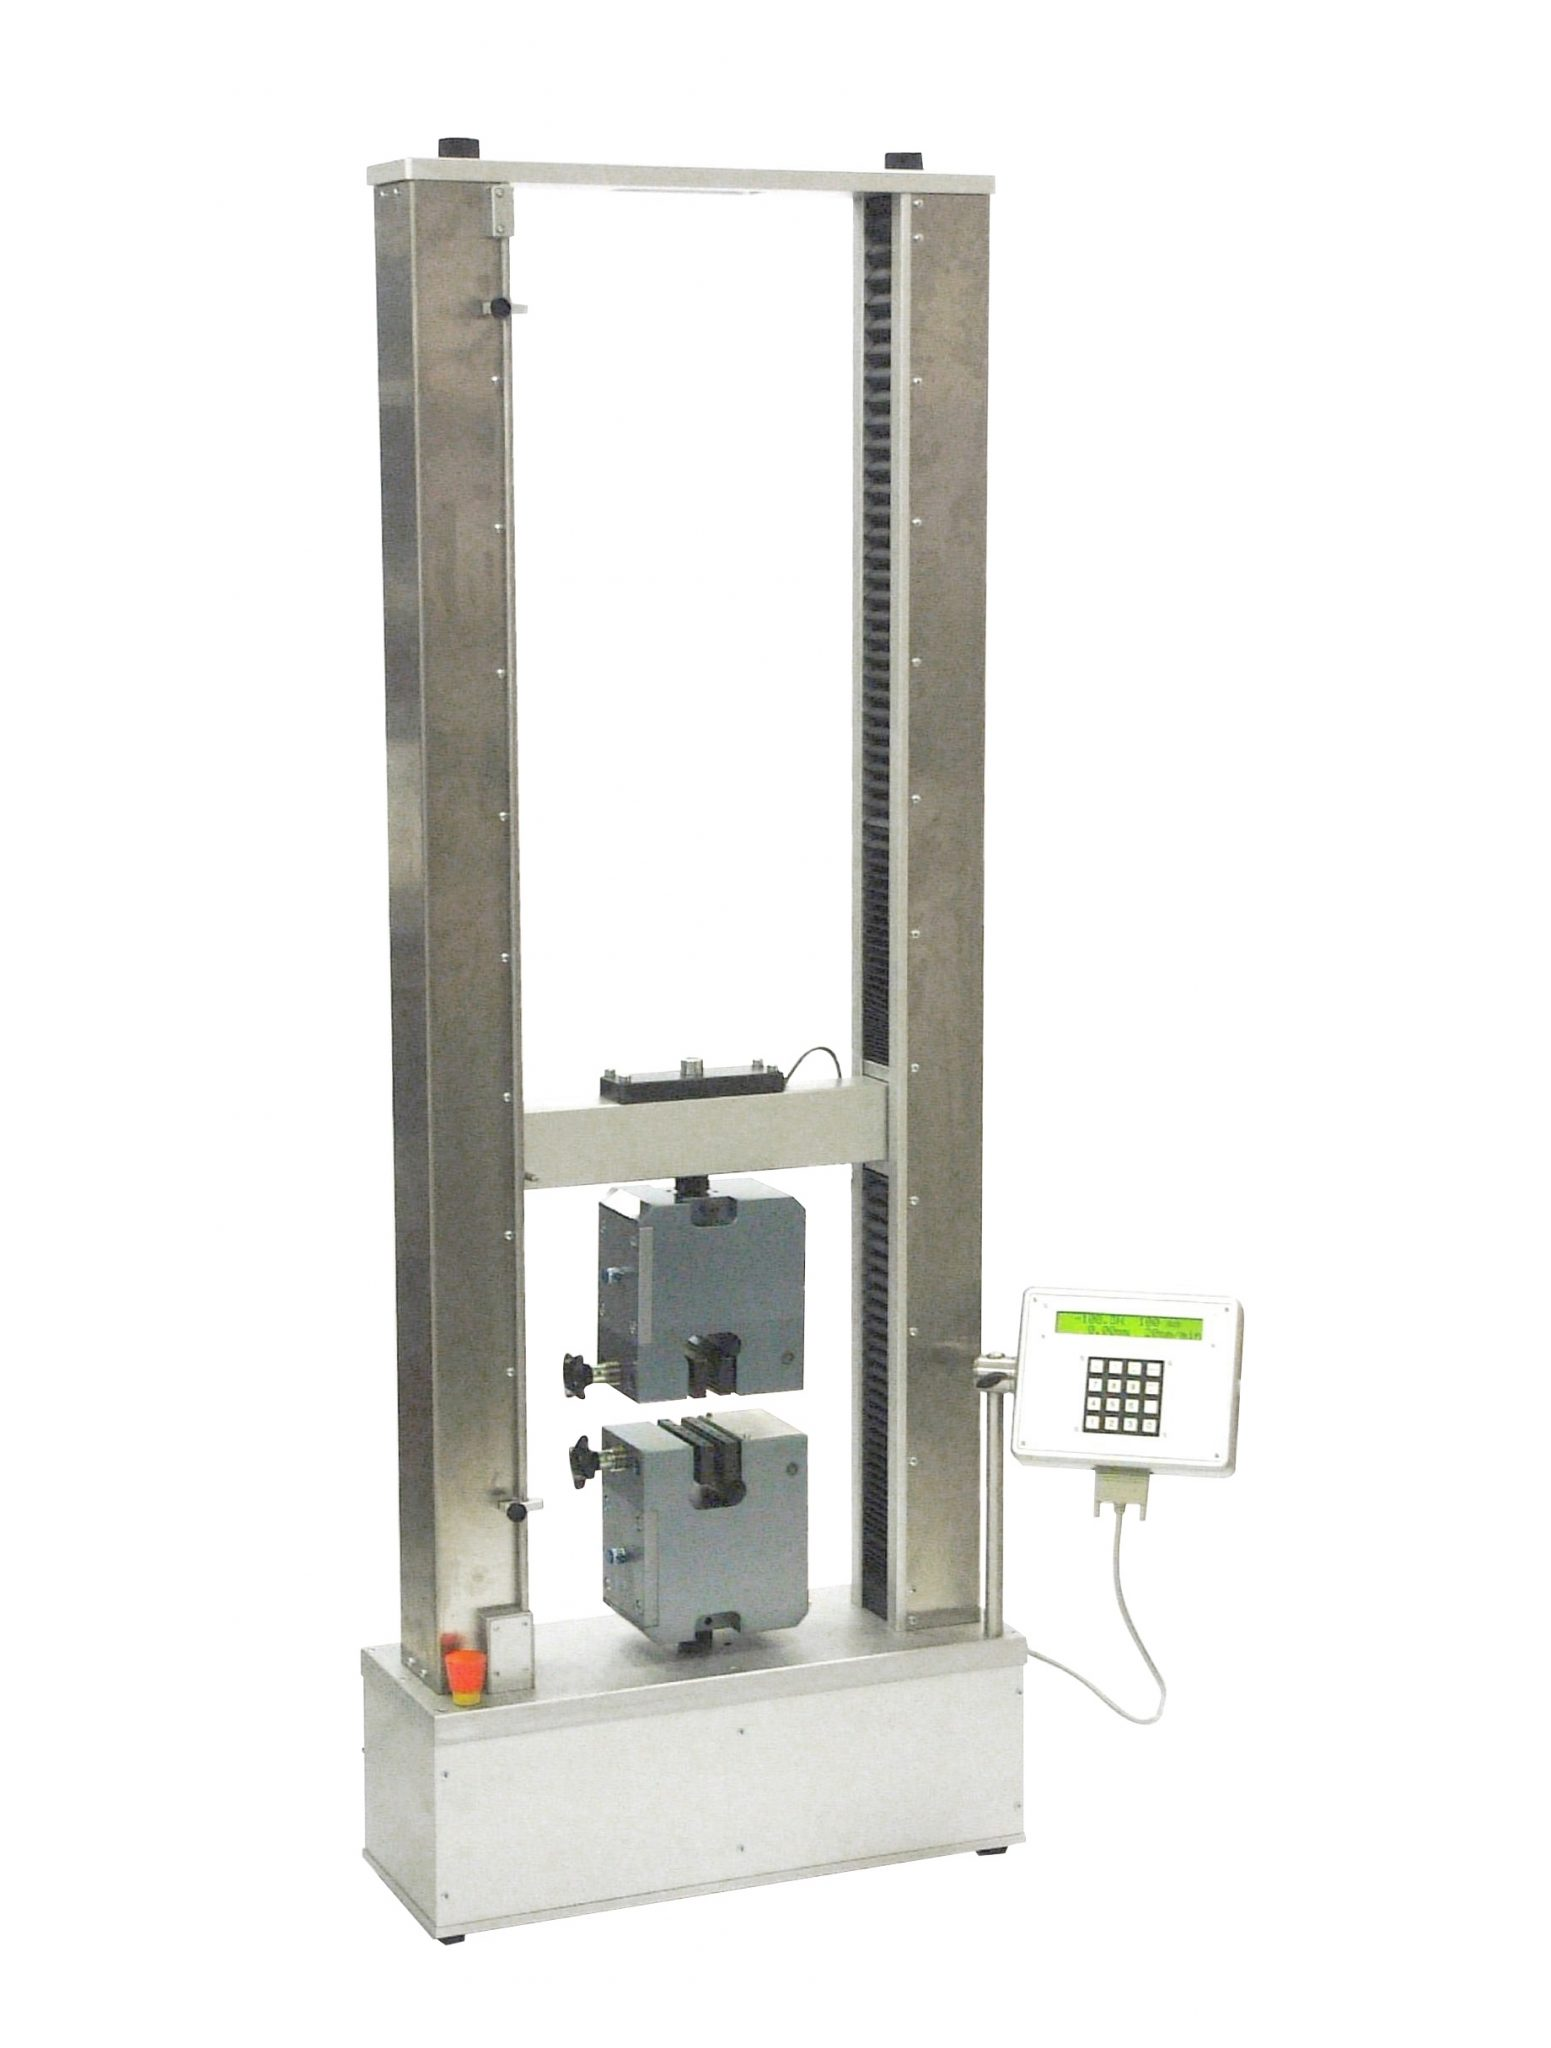 Tensile Tester Universal Testing Machine besides 6192776 moreover Steam Turbine together with 12v Winch Switch Wiring Diagram Schematic also Circuit Breakers. on testing a dc motor